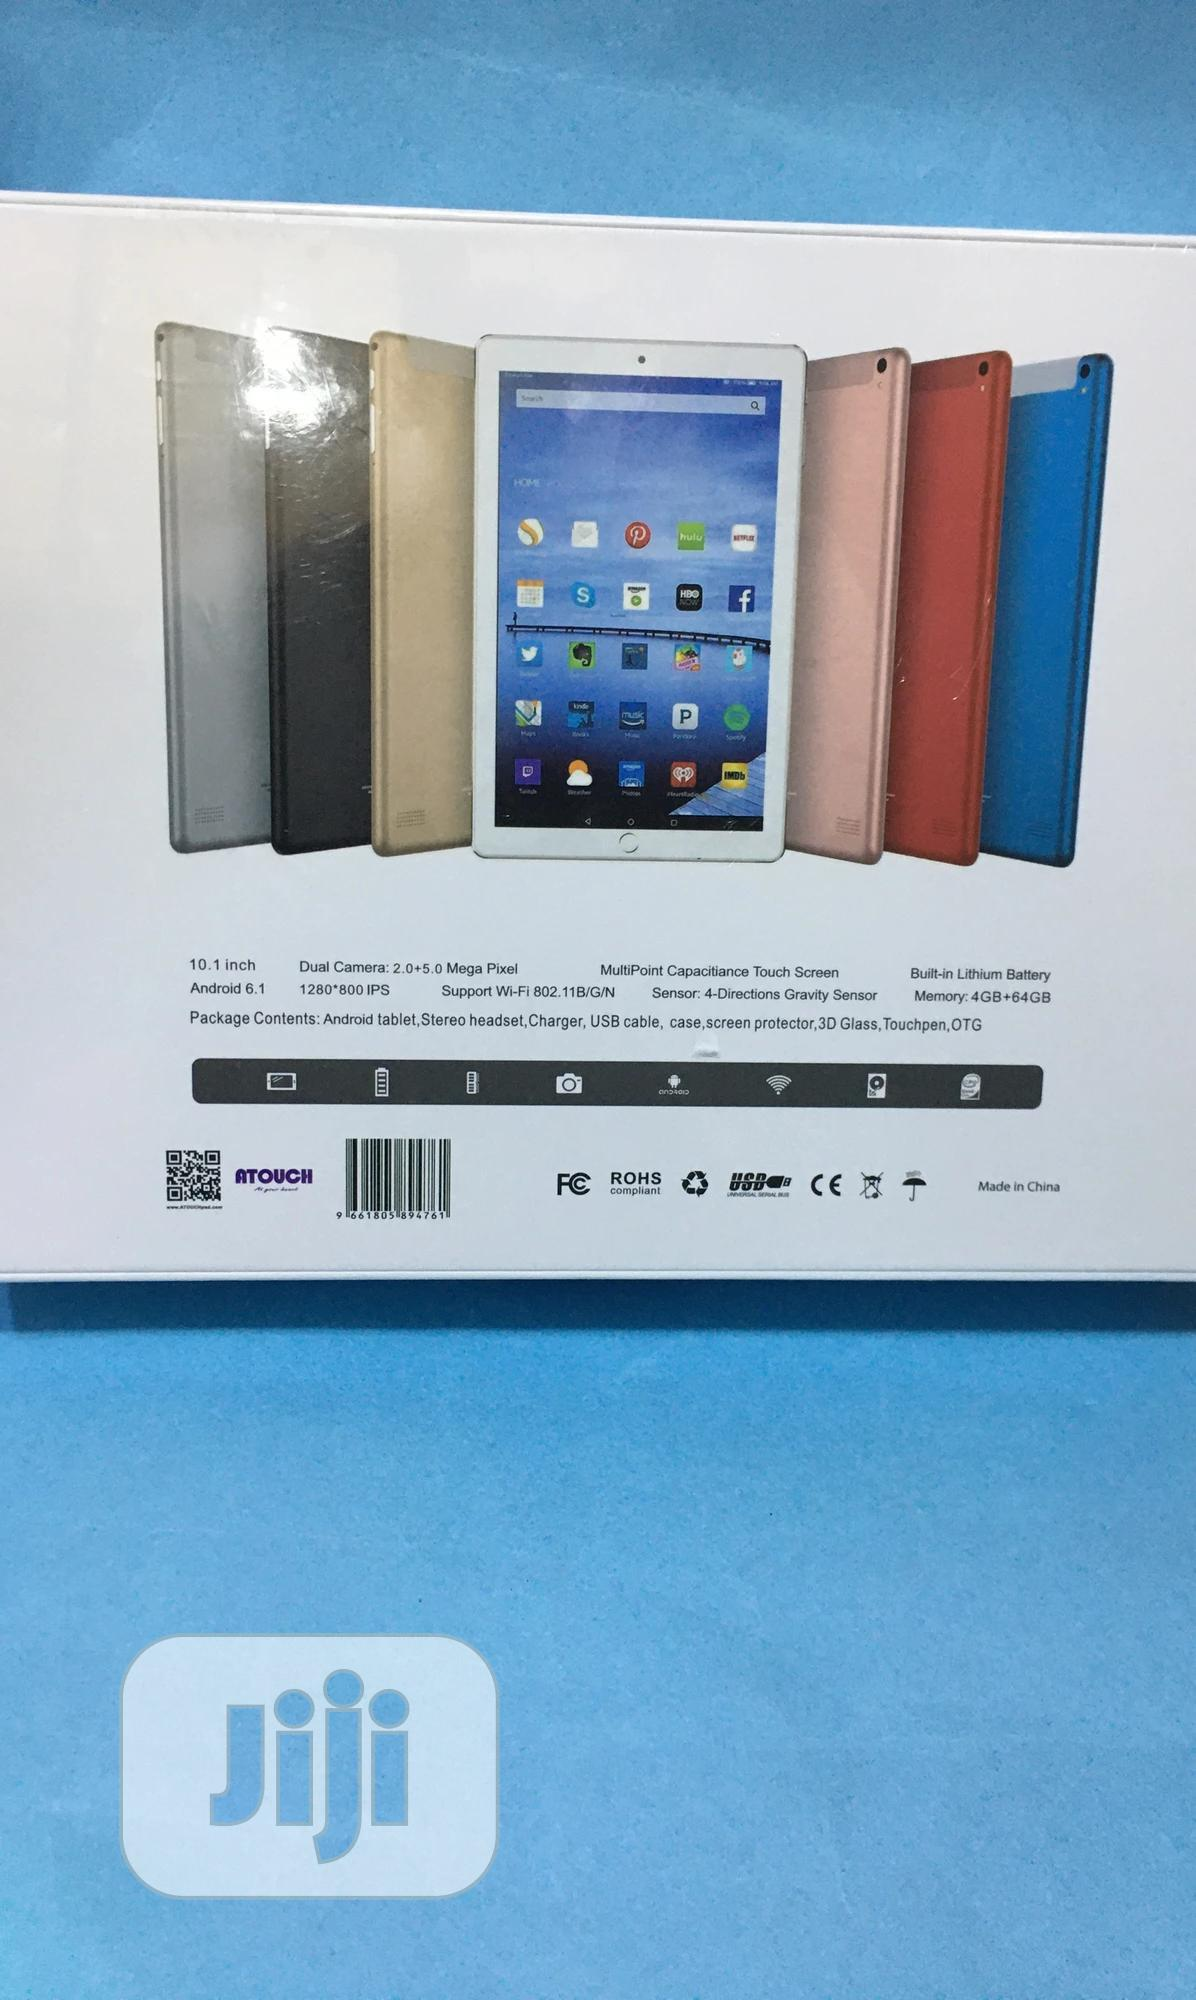 New Atouch A703 64 GB | Tablets for sale in Surulere, Lagos State, Nigeria